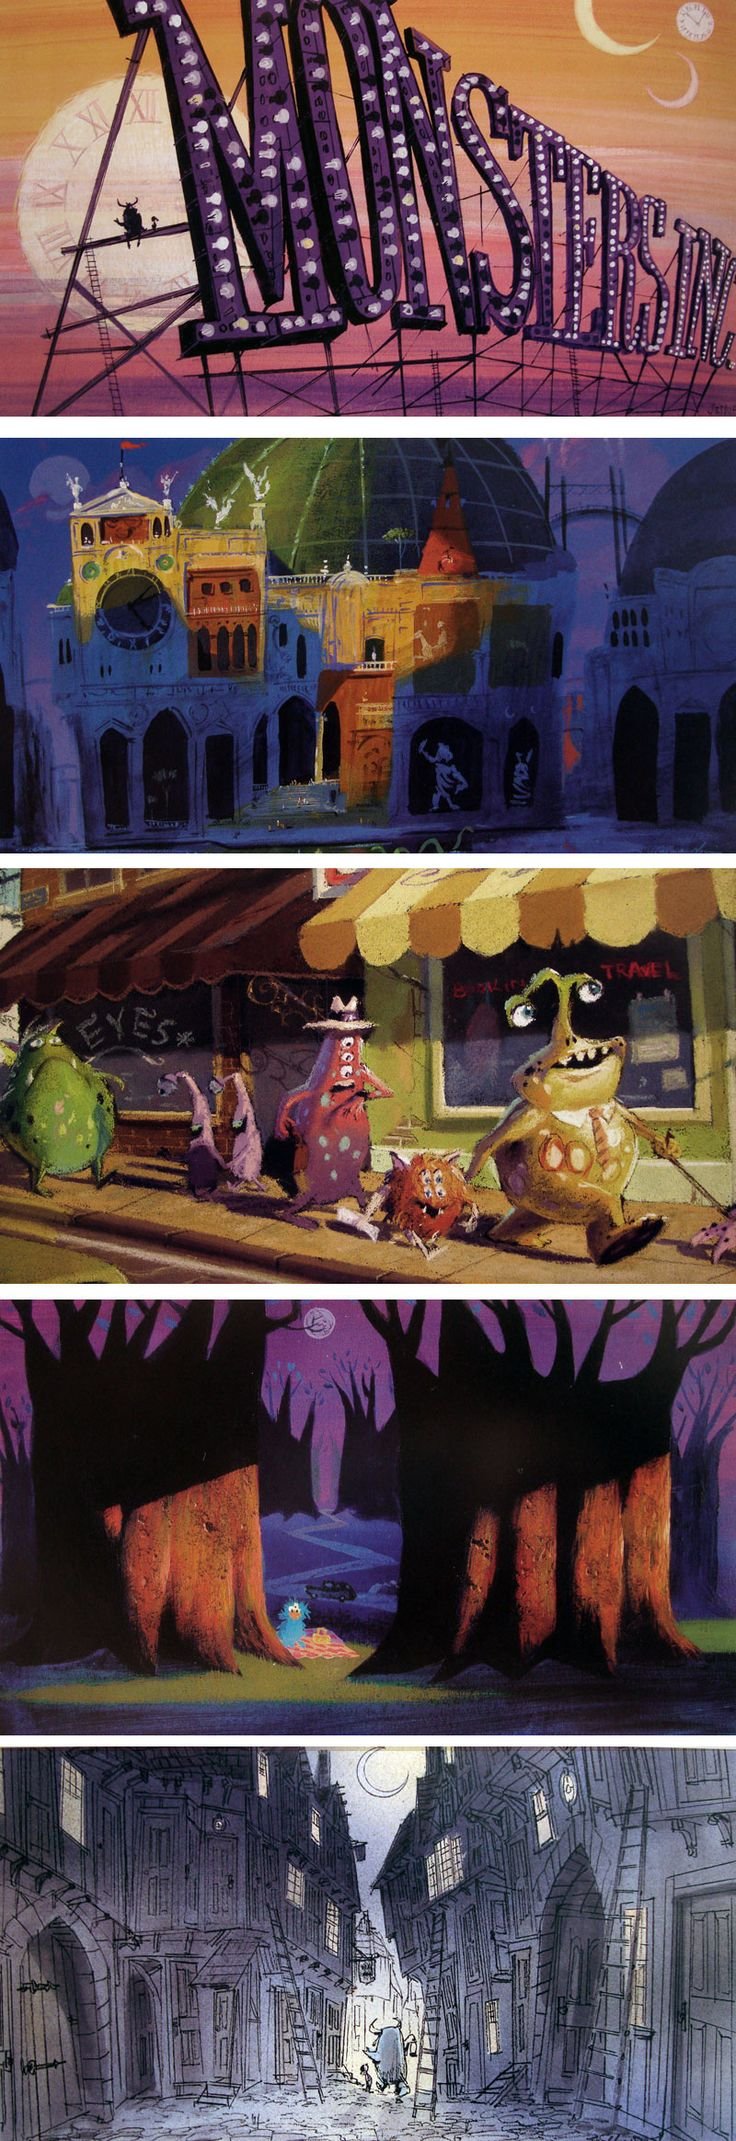 Concept art from Monsters Inc. The only Pixar concept art book missing from my collection